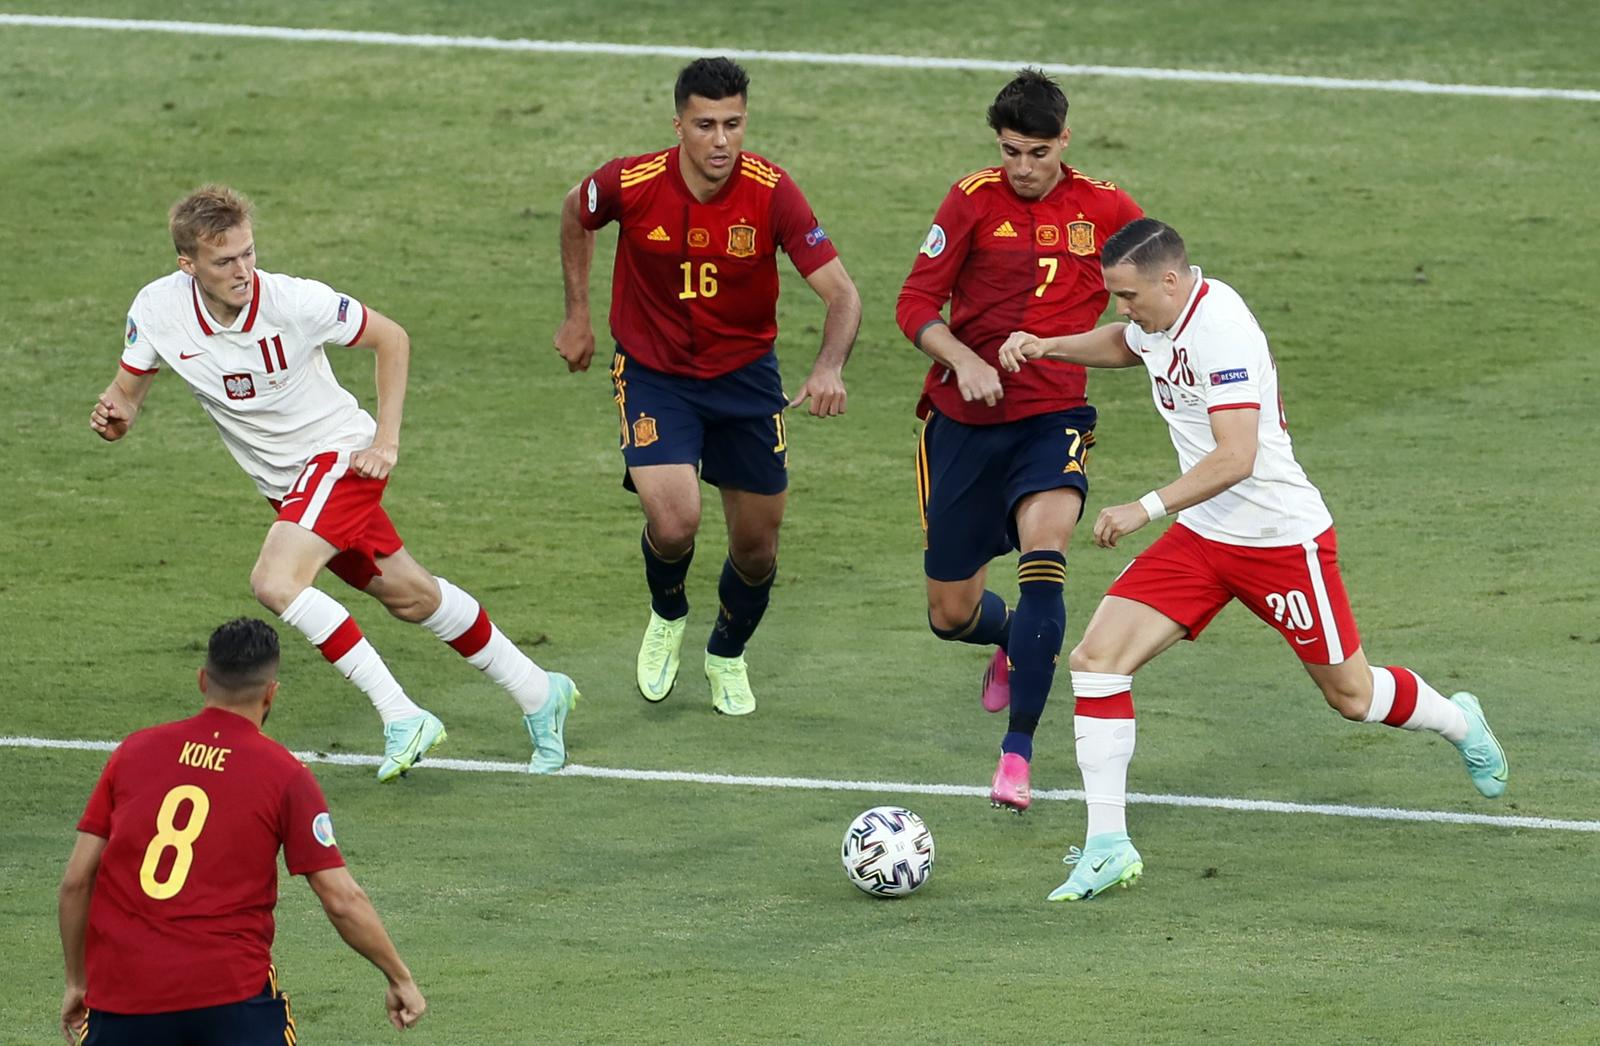 Wasteful Spain held by Poland, face crunch final group game